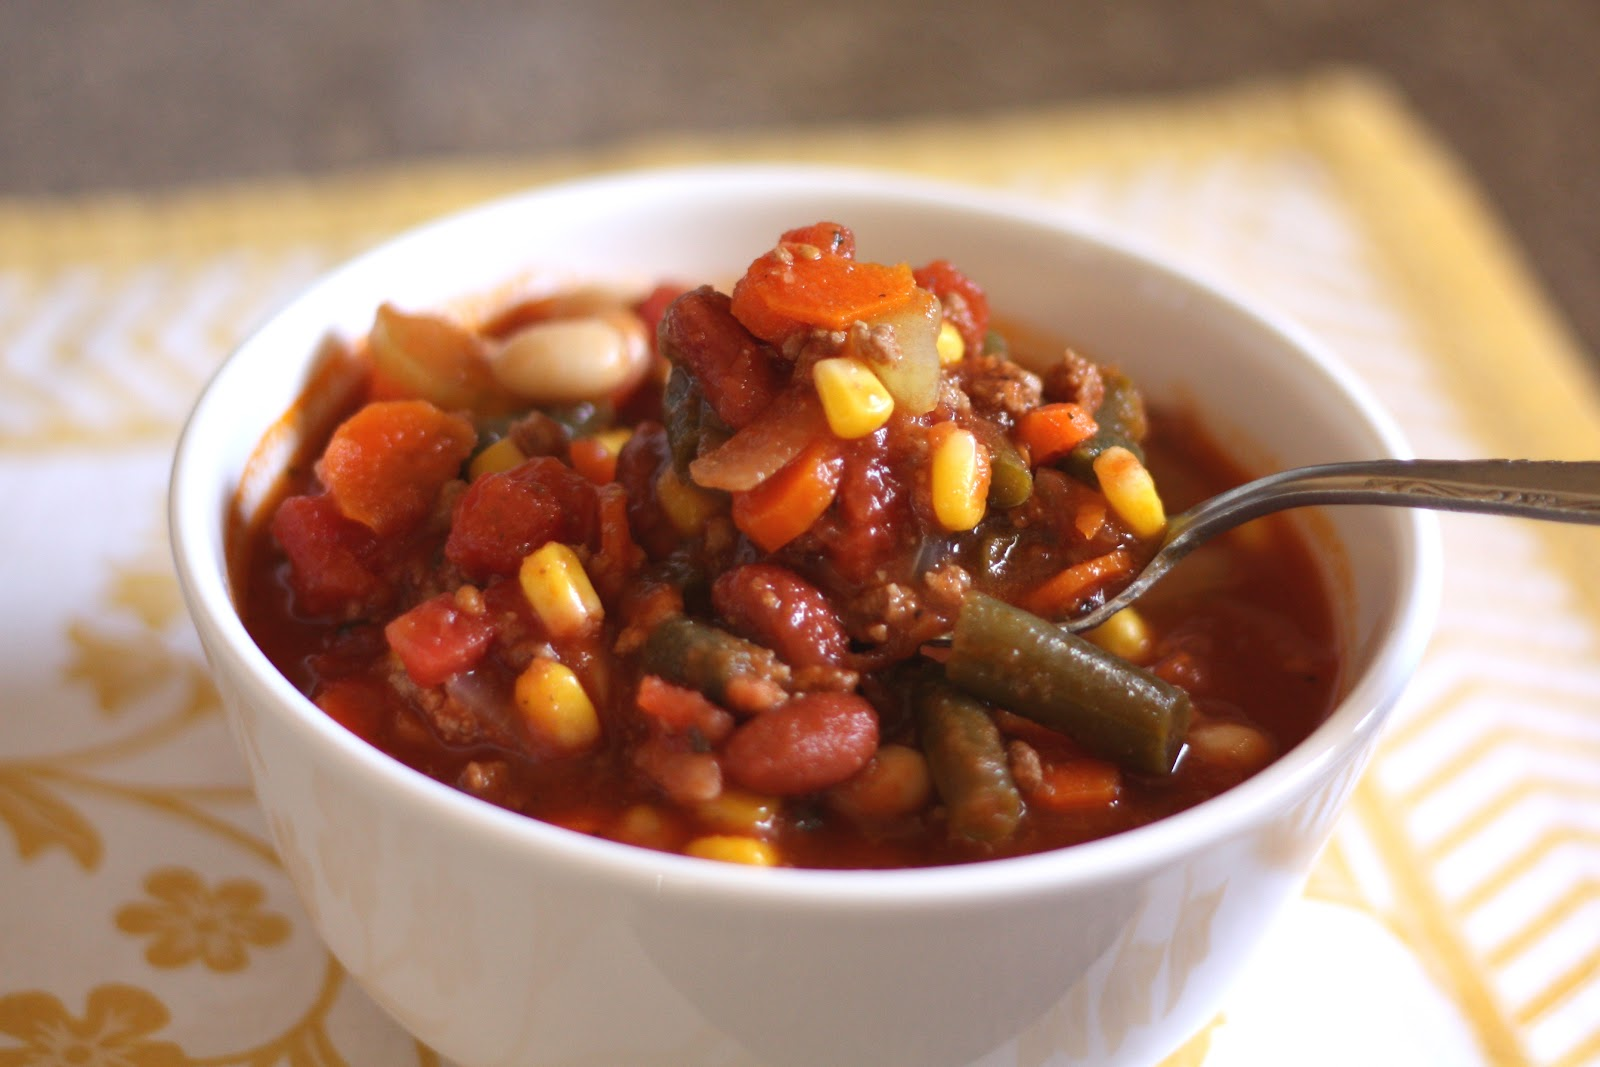 Barefeet In The Kitchen: Hearty Italian Beef and Vegetable Stew